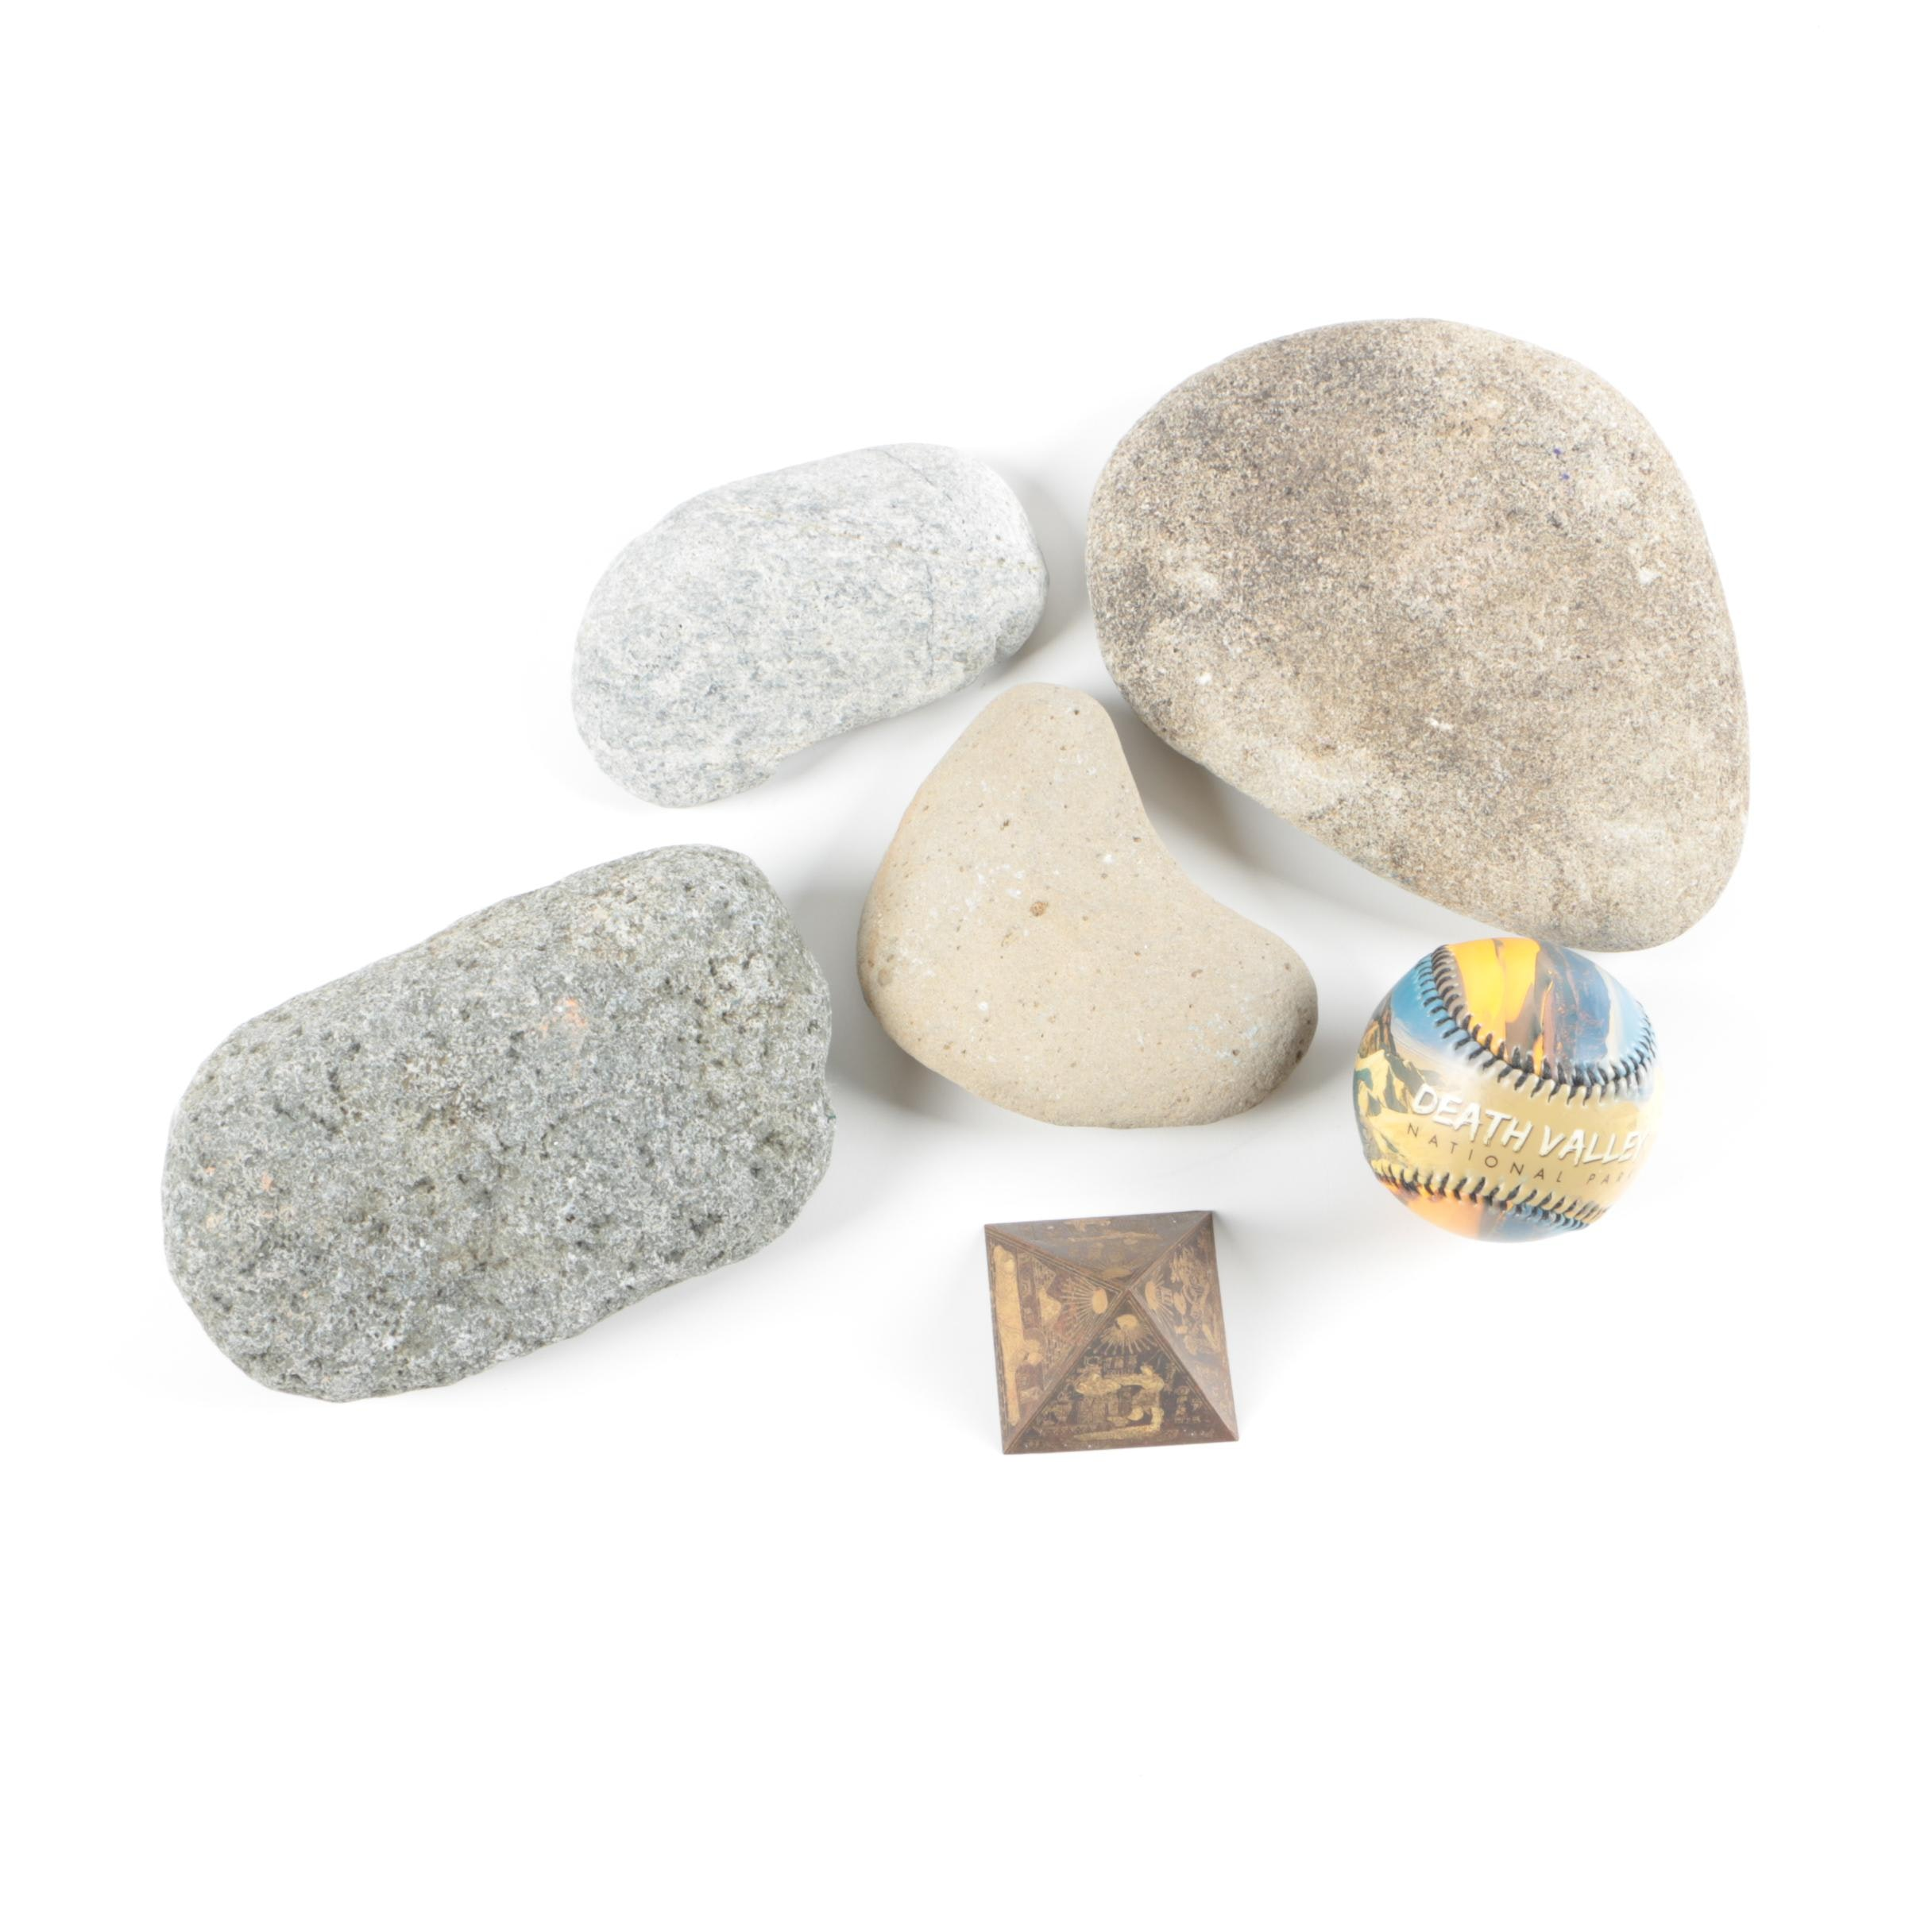 Rock Specimens, Baseball and Pyramid Paperweight